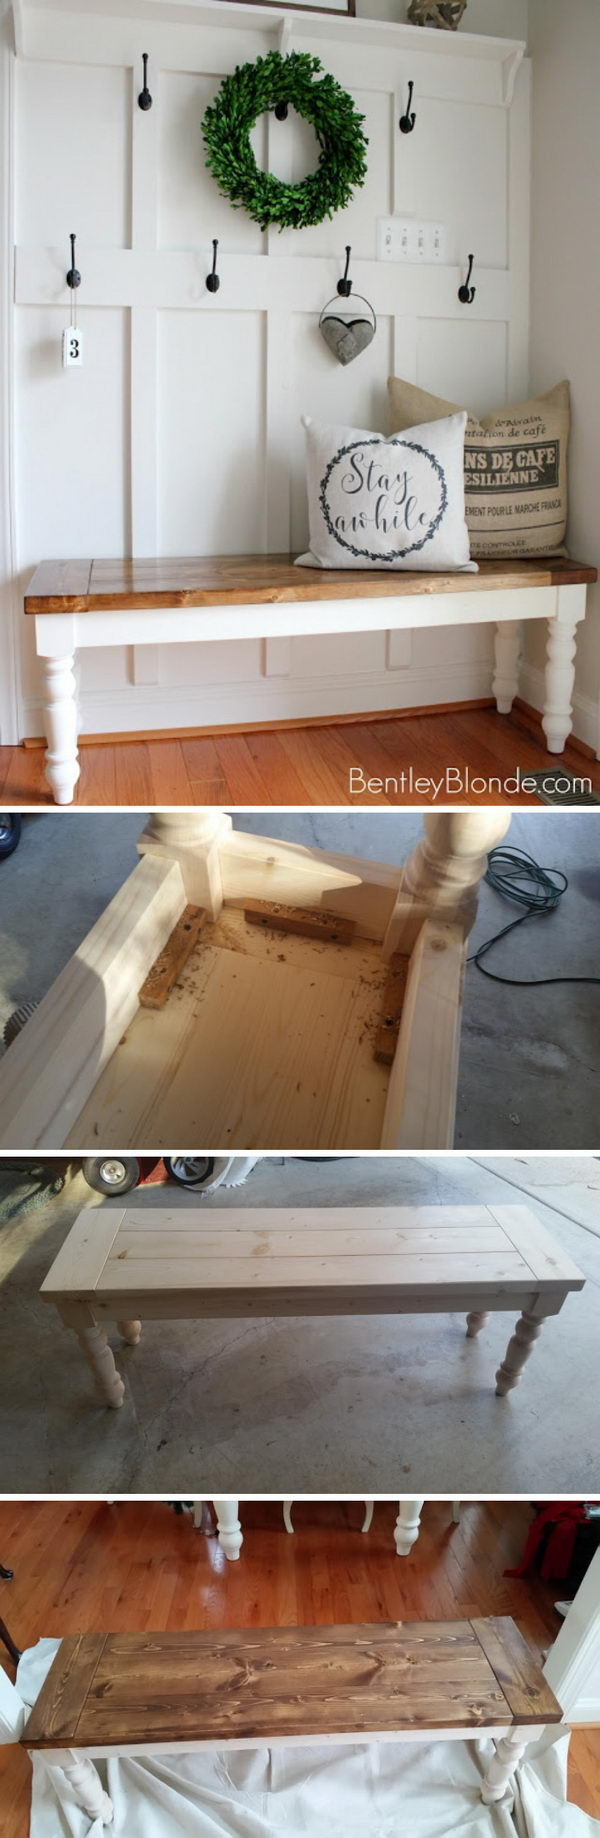 DIY Farmhouse Bench.